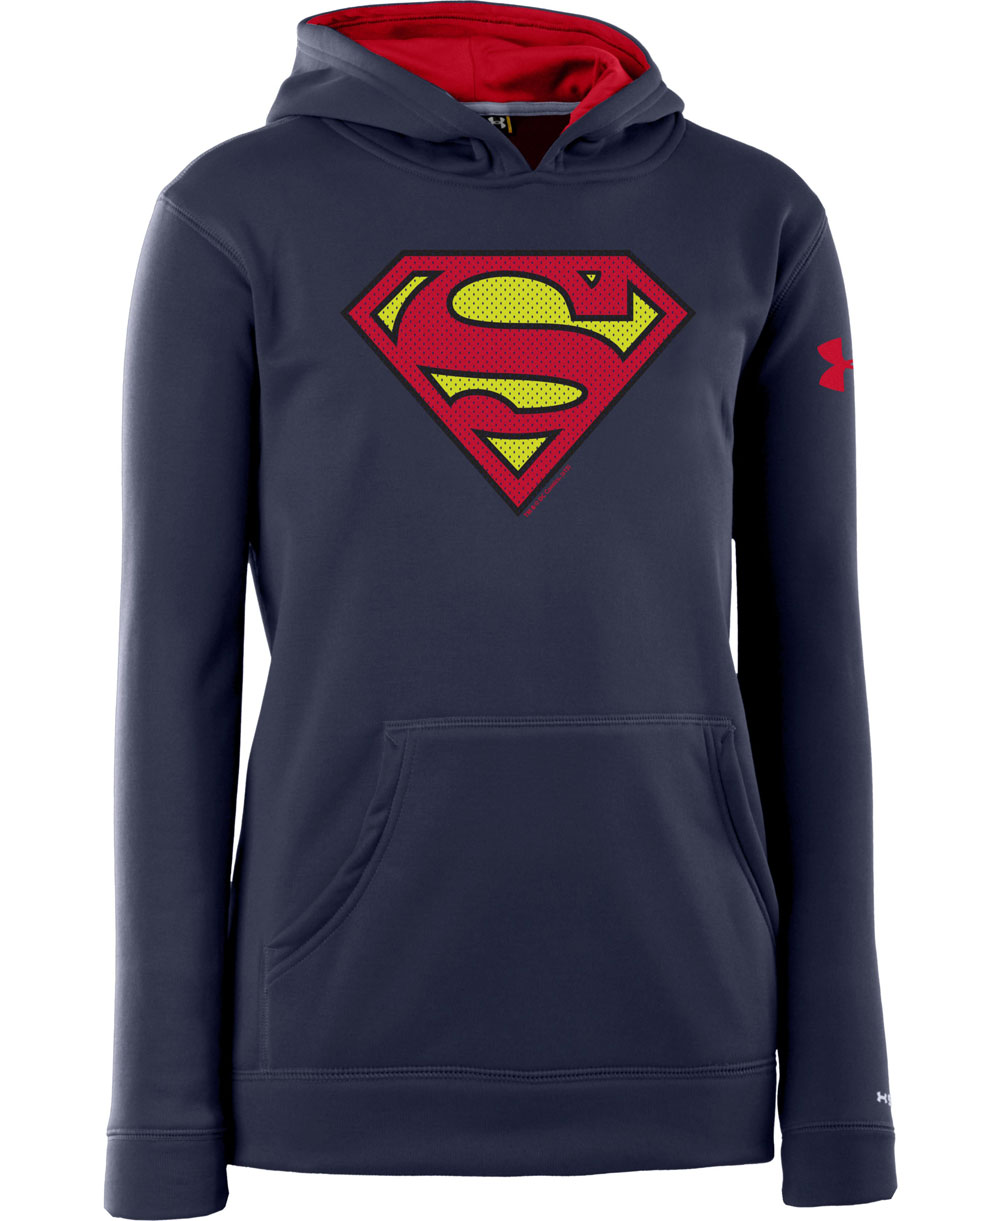 Armour Fleece Storm Sudadera con Capucha para Niño Superman